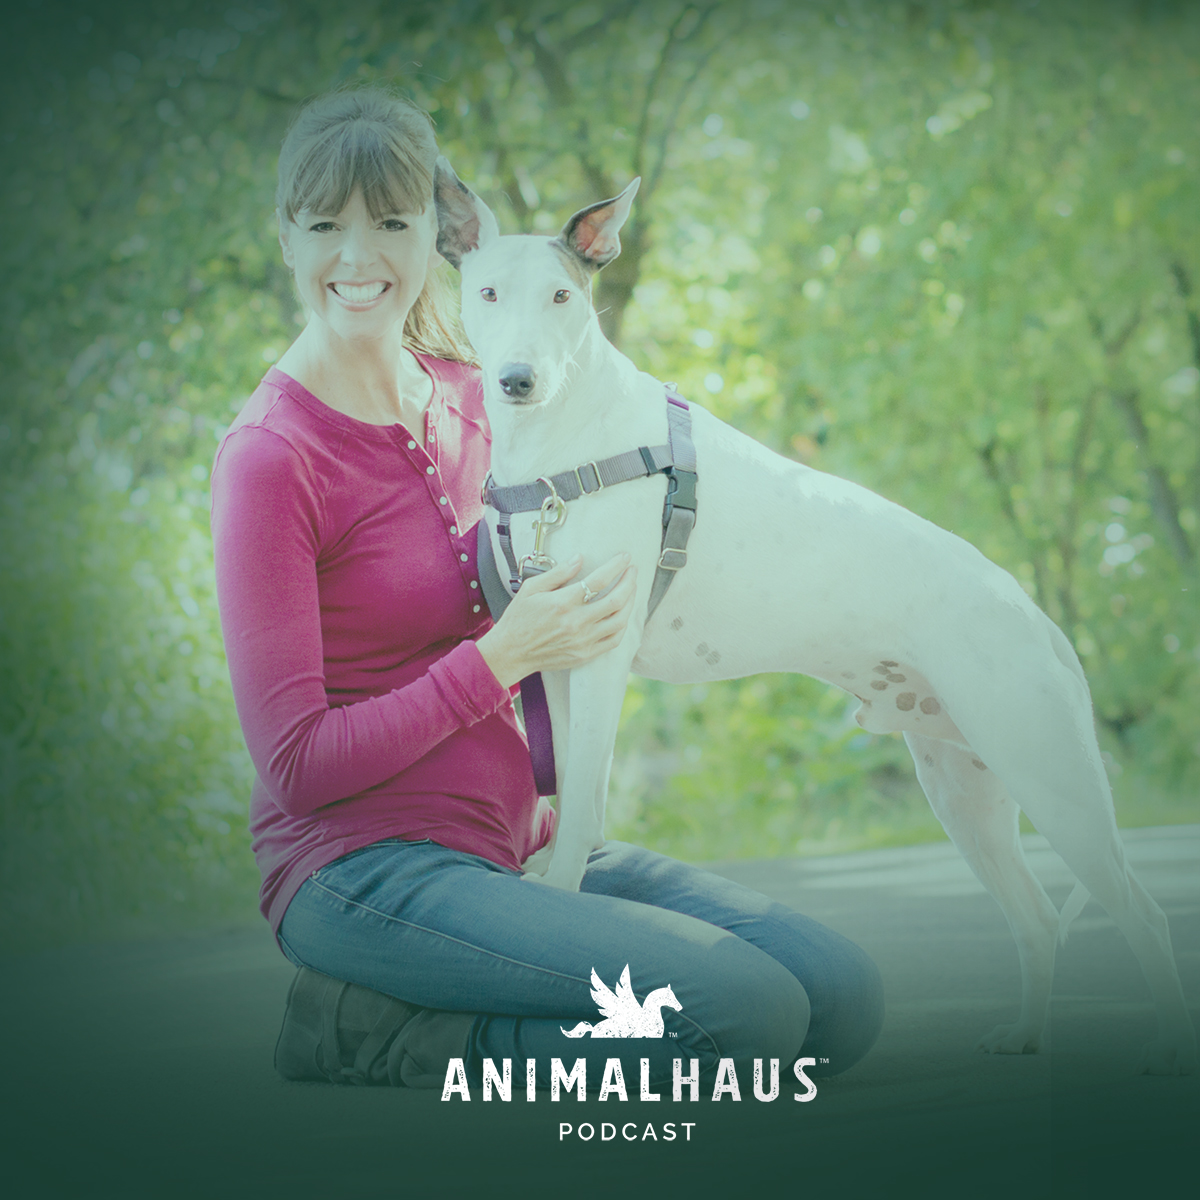 Victoria Stilwell on the Animalhaus podcast